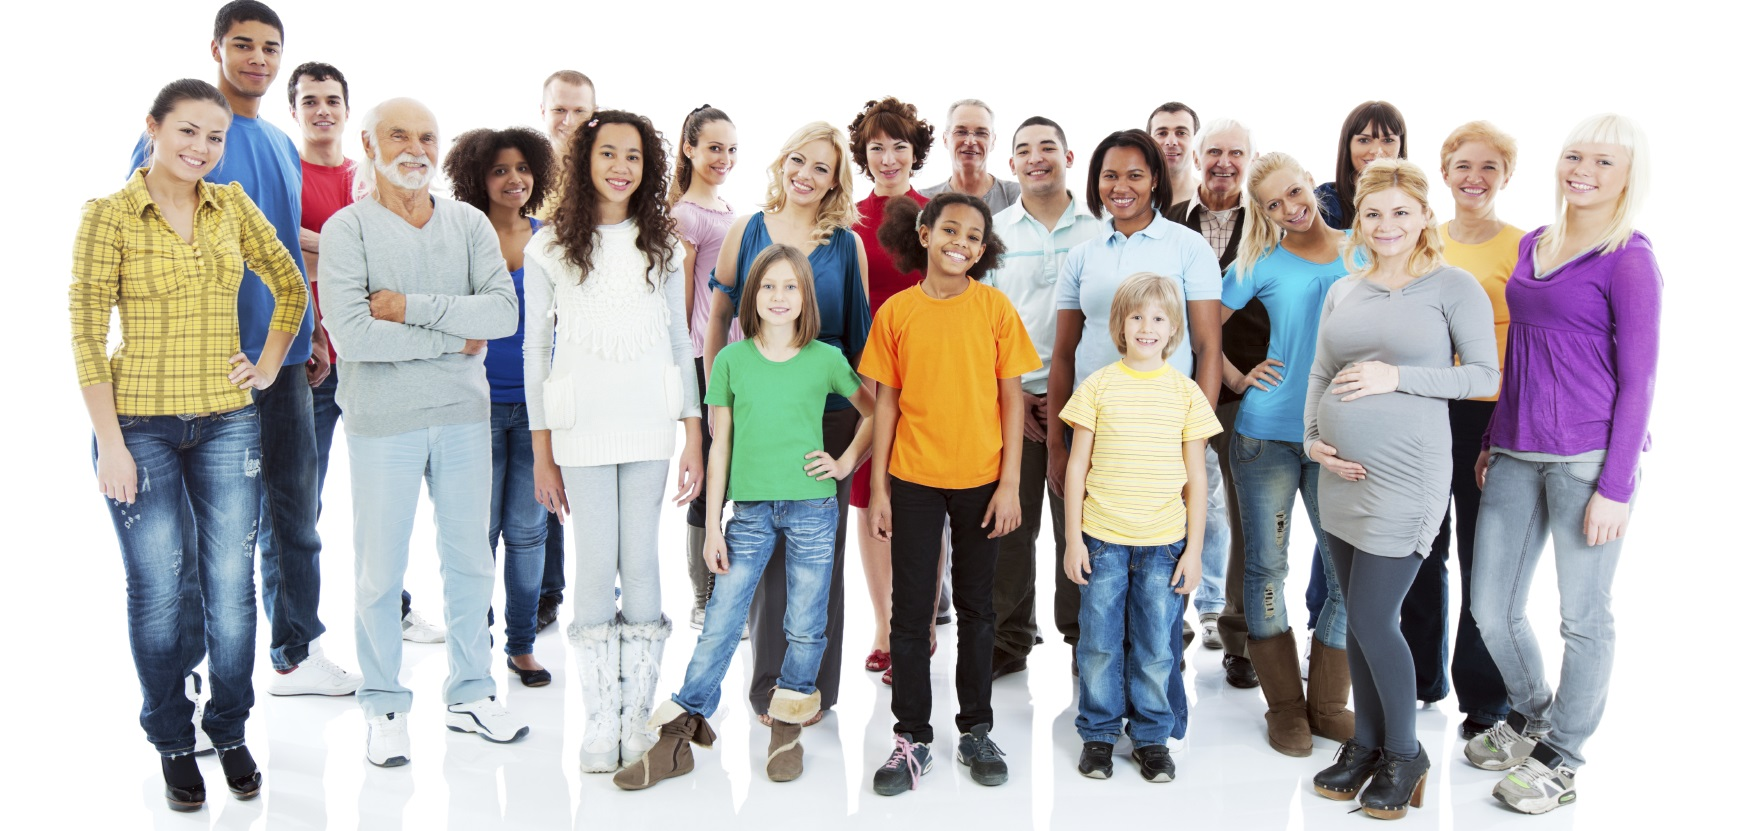 Large group of people standing together. They are isolated on white background. [url=https://www.istockphoto.com/search/lightbox/9786738][img]https://dl.dropbox.com/u/40117171/group.jpg[/img][/url]